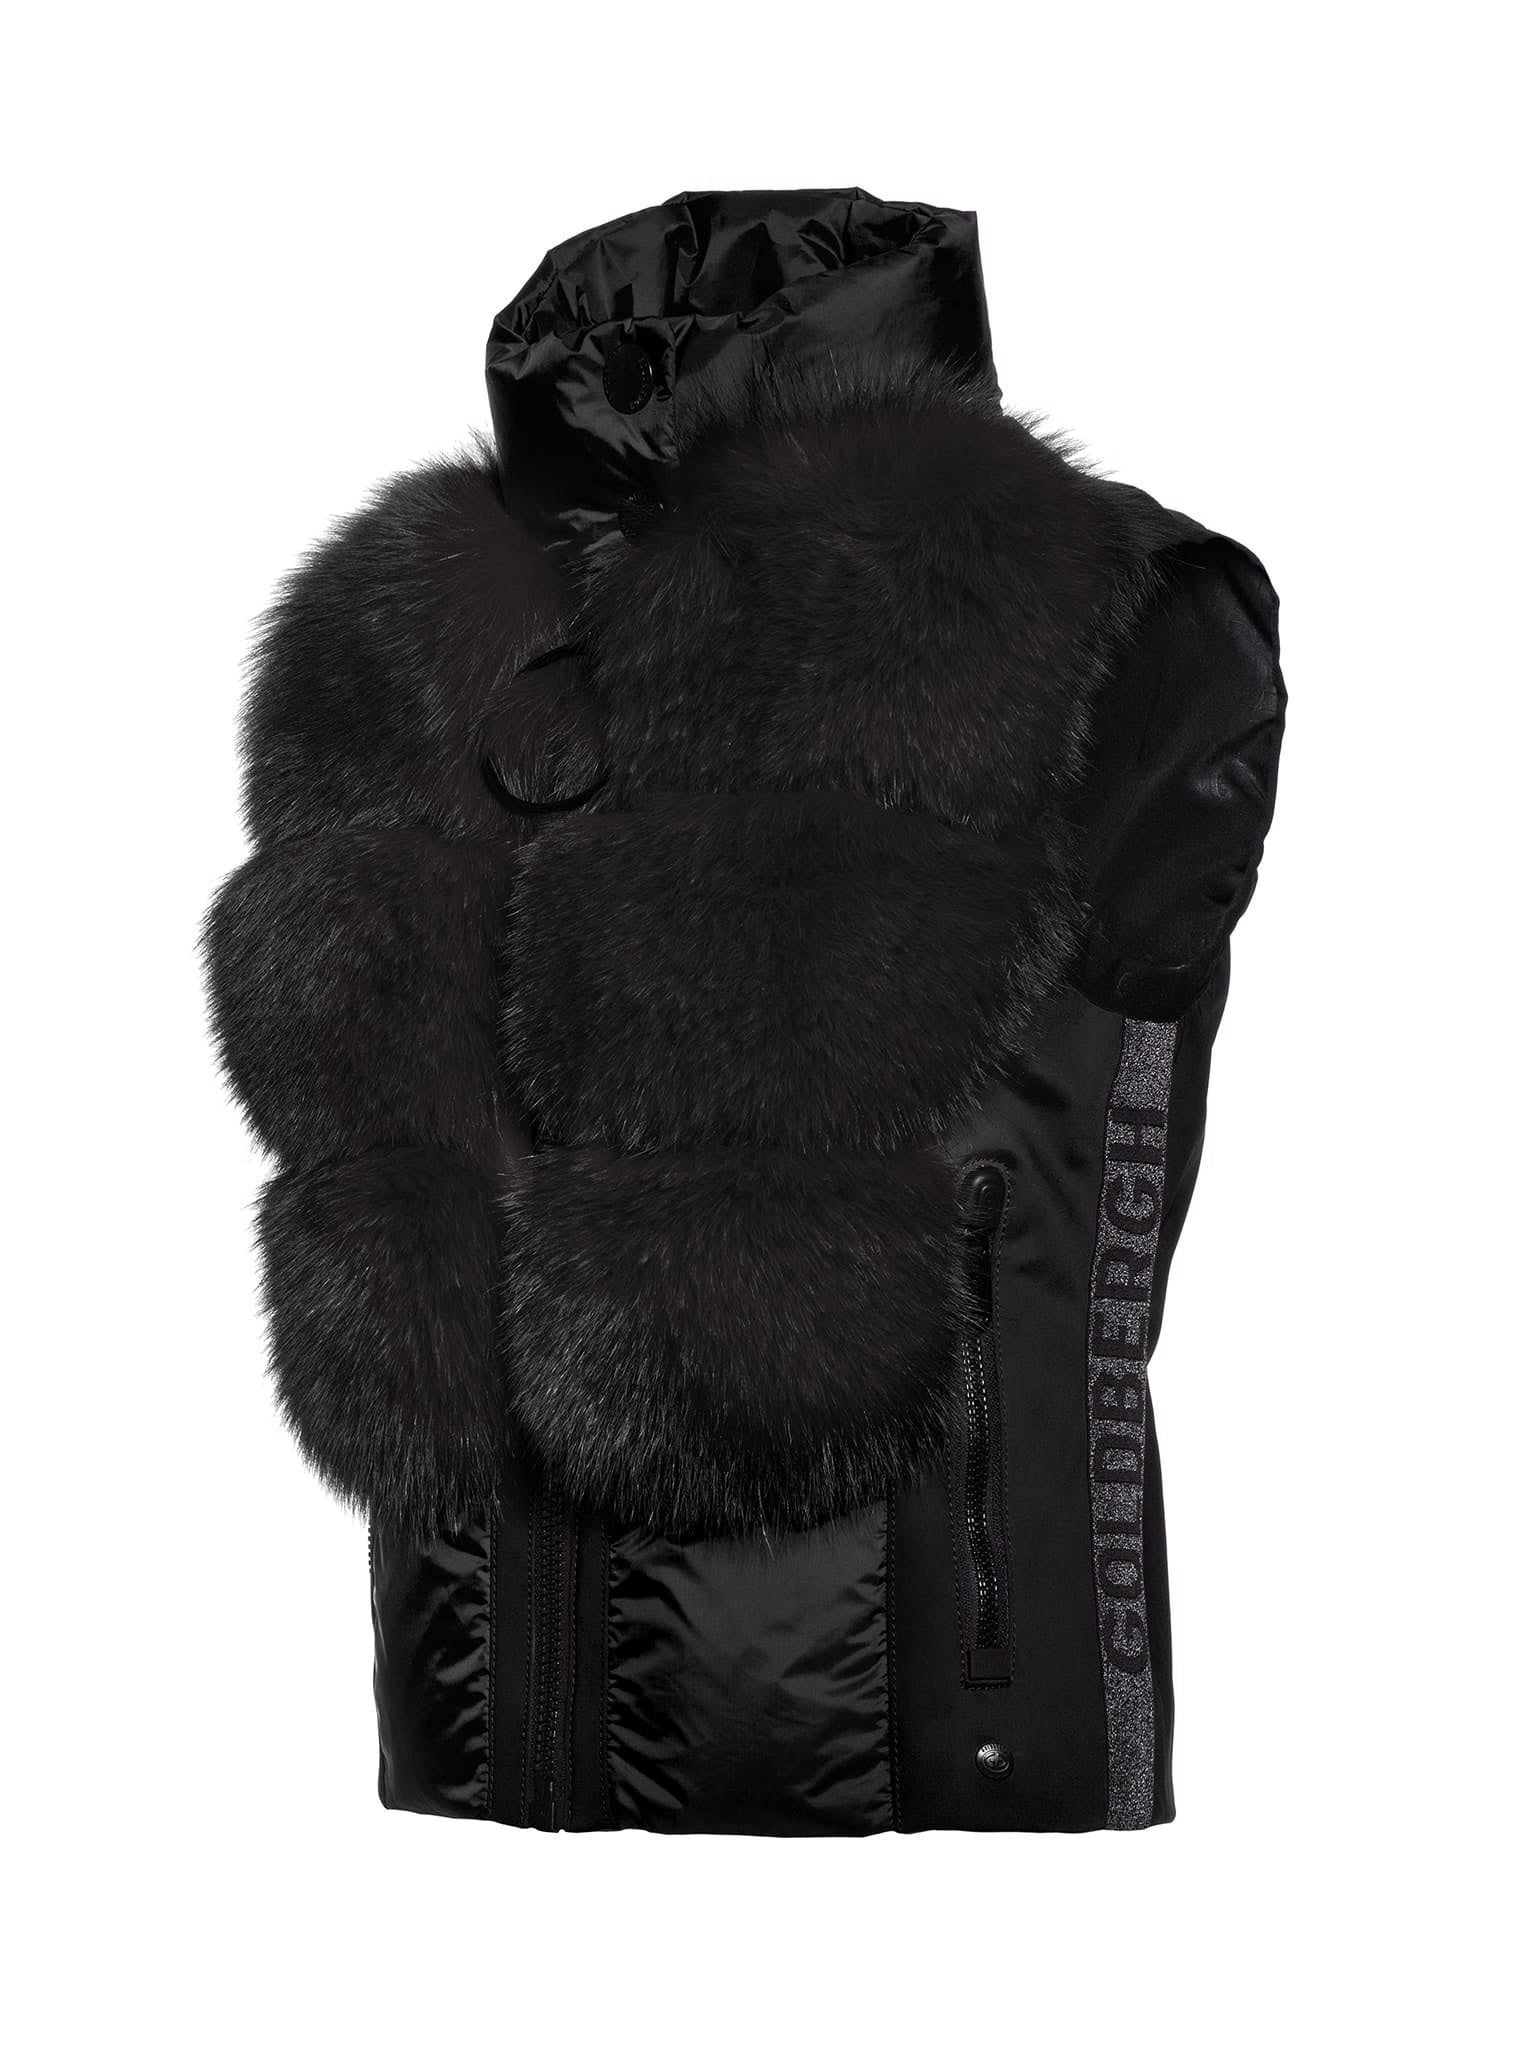 Adda Bodywamer Real Fox Fur - Black